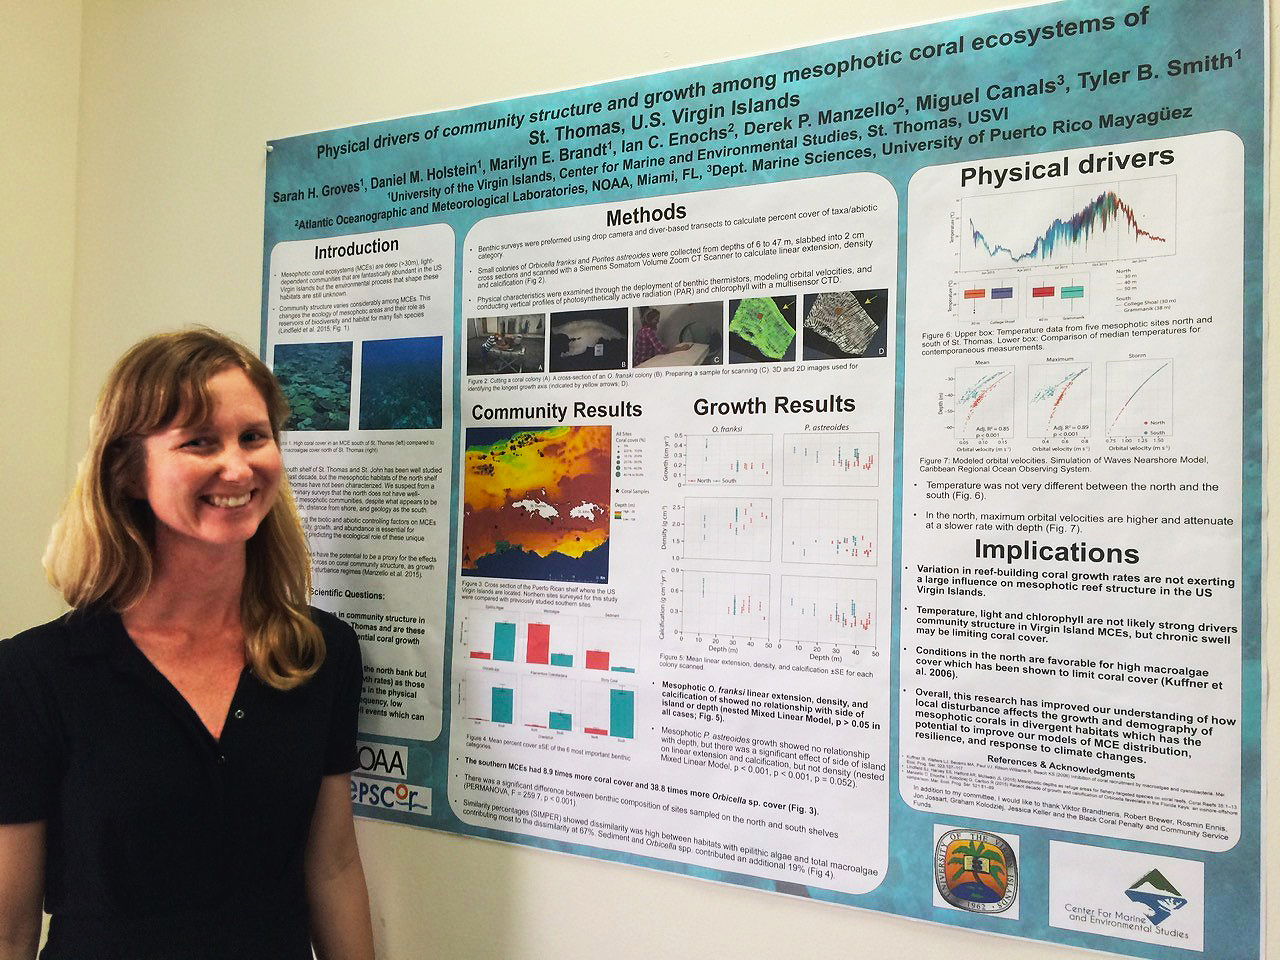 Sarah Groves -- Physical Drivers of Community Structure and Growth of Mesophotic Coral Ecosystems Surrounding St. Thomas, U.S. Virgin Islands